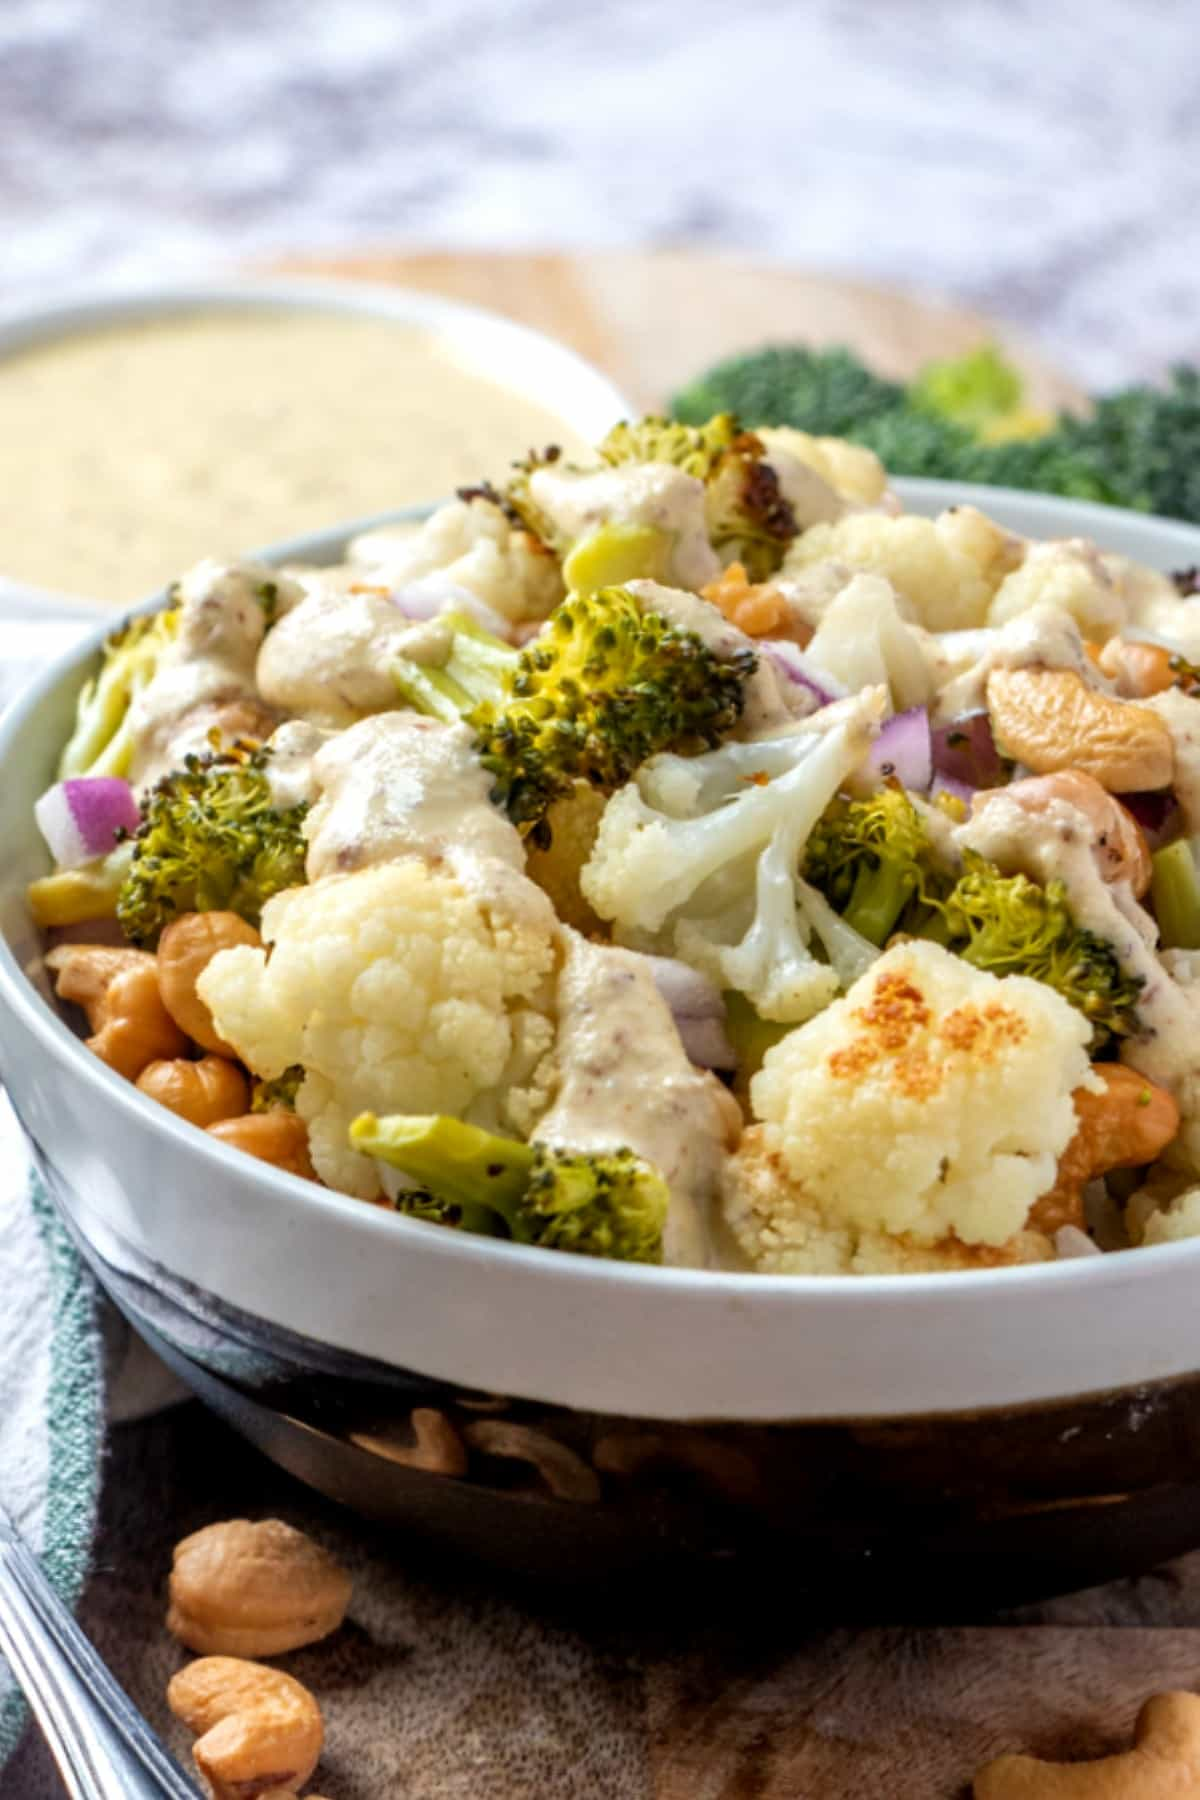 Cropped vegan Buddha bowl full of roasted veggies with a sauce over the top and cashews sprinkled around the sides.